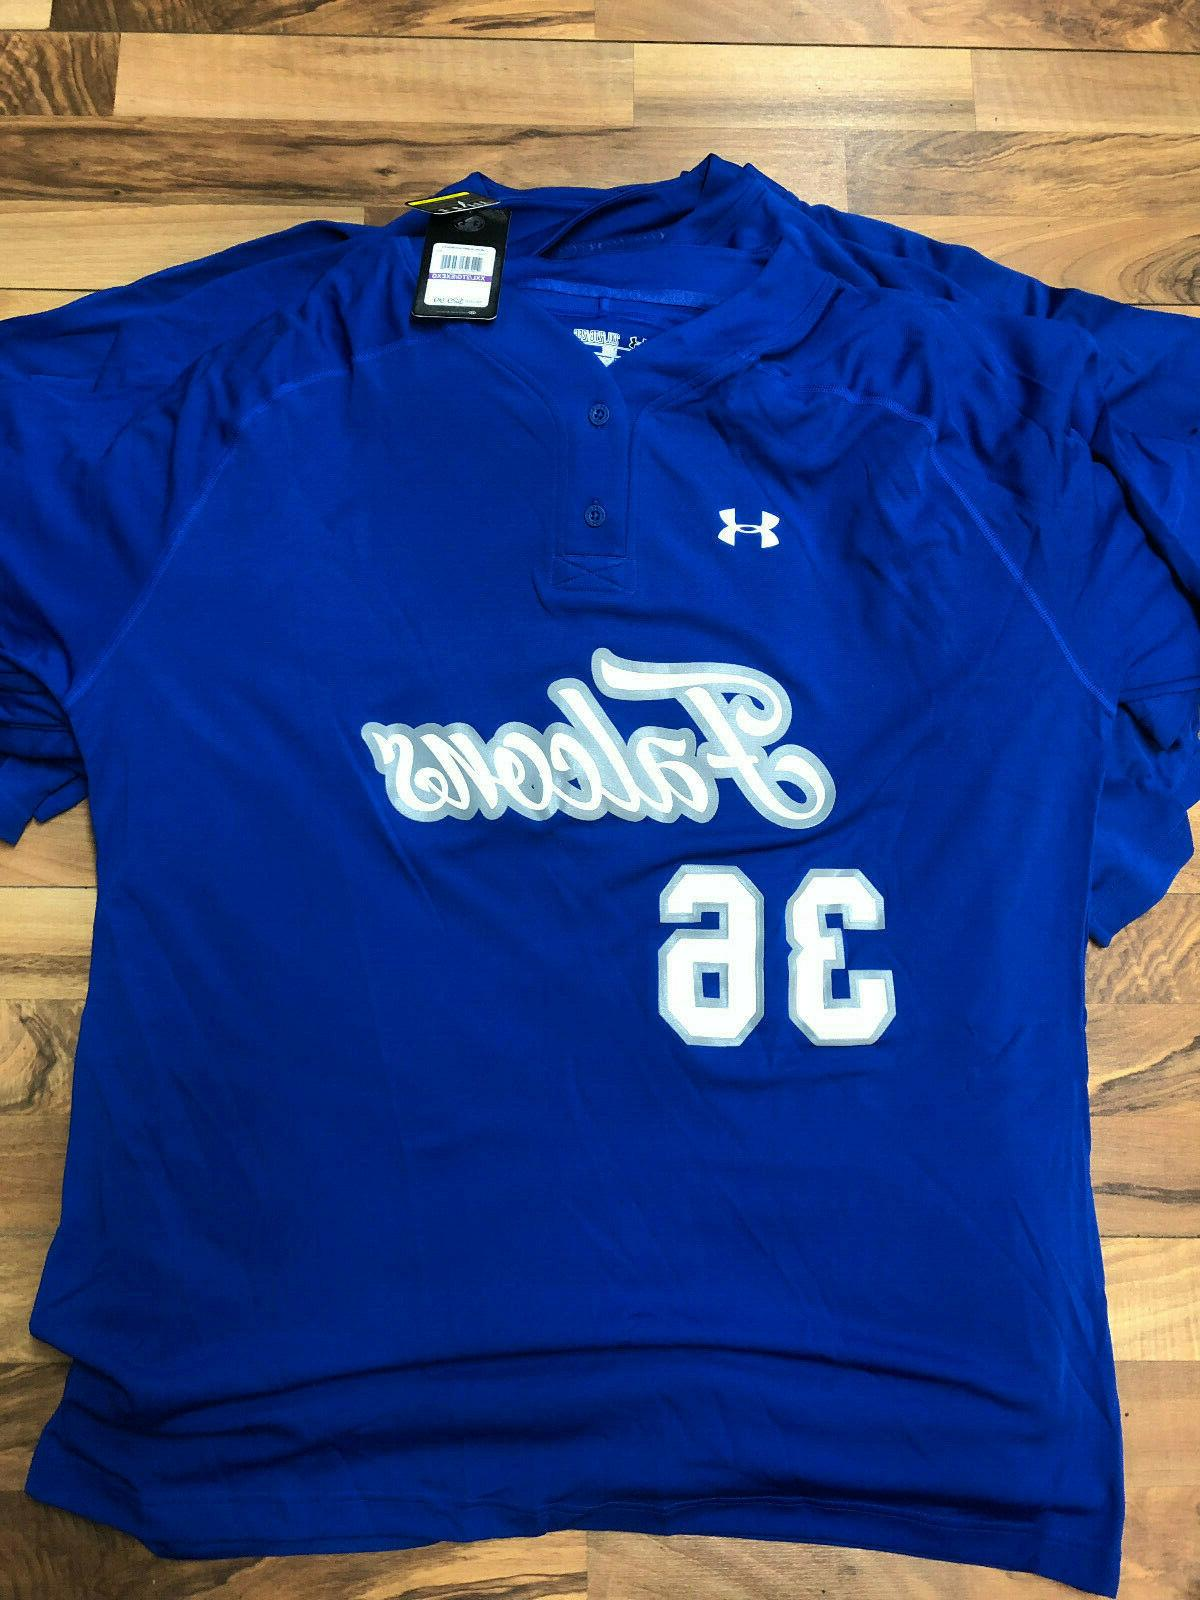 Lot Under Armour Shirt Mens L 2XL